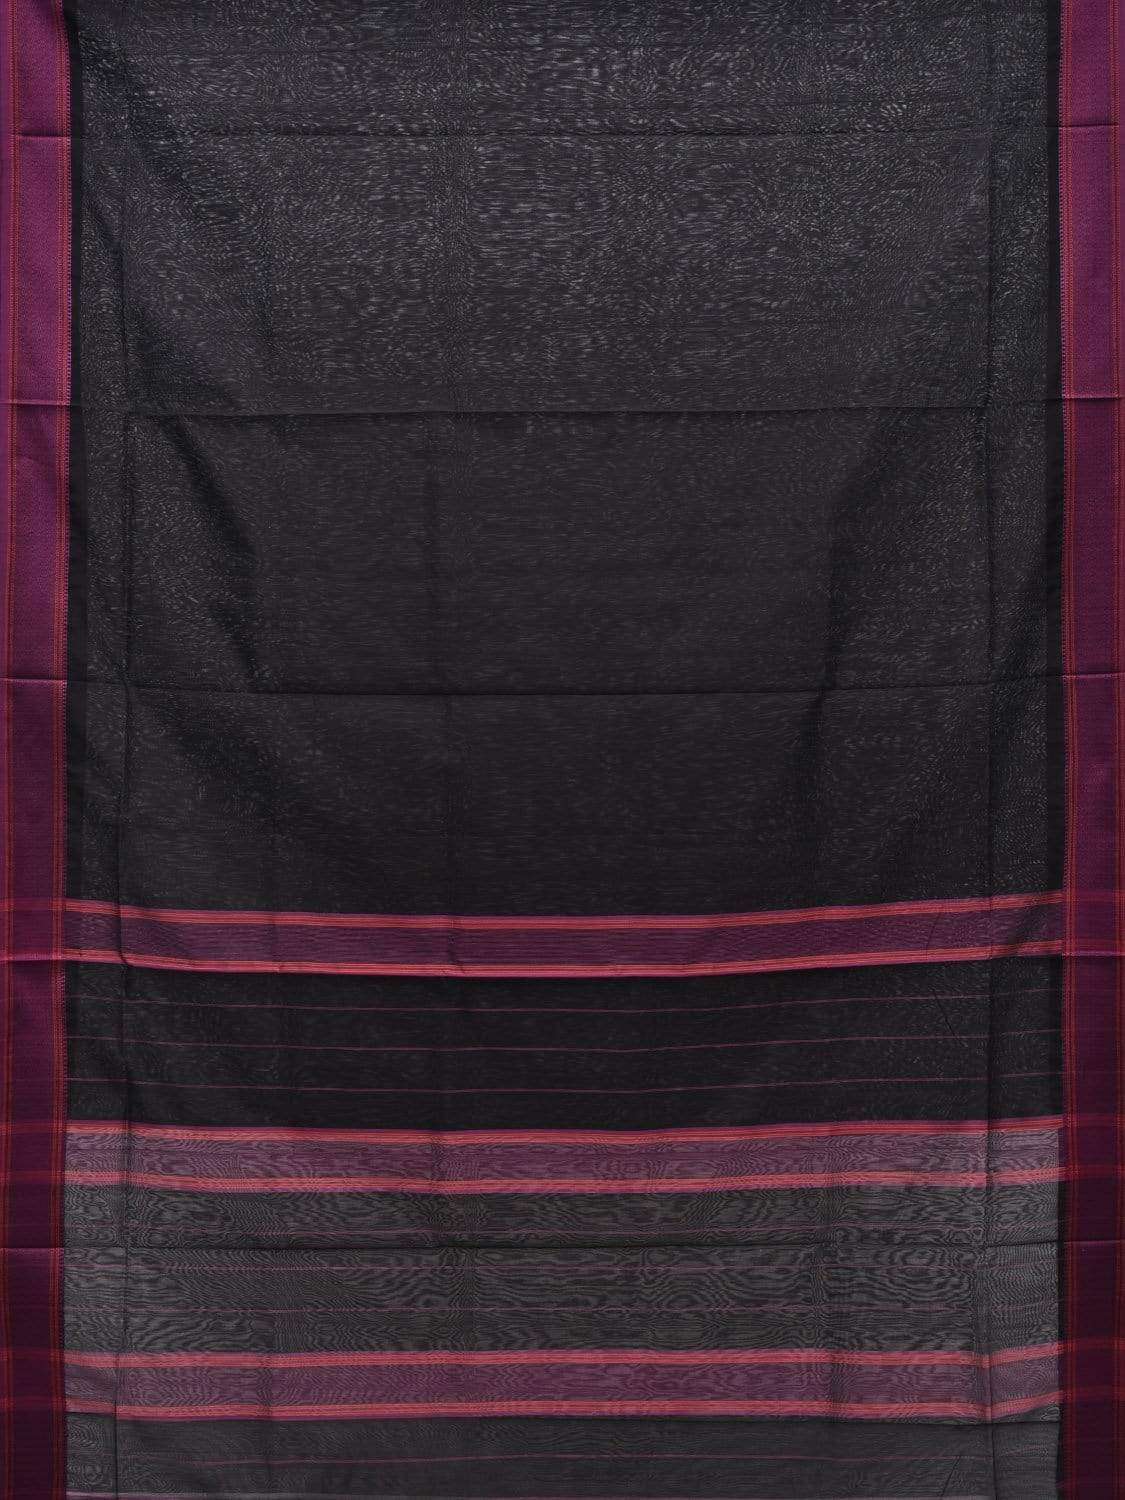 Black Maheshwari Cotton Silk Handloom Plain Saree with Strips Pallu Design m0124